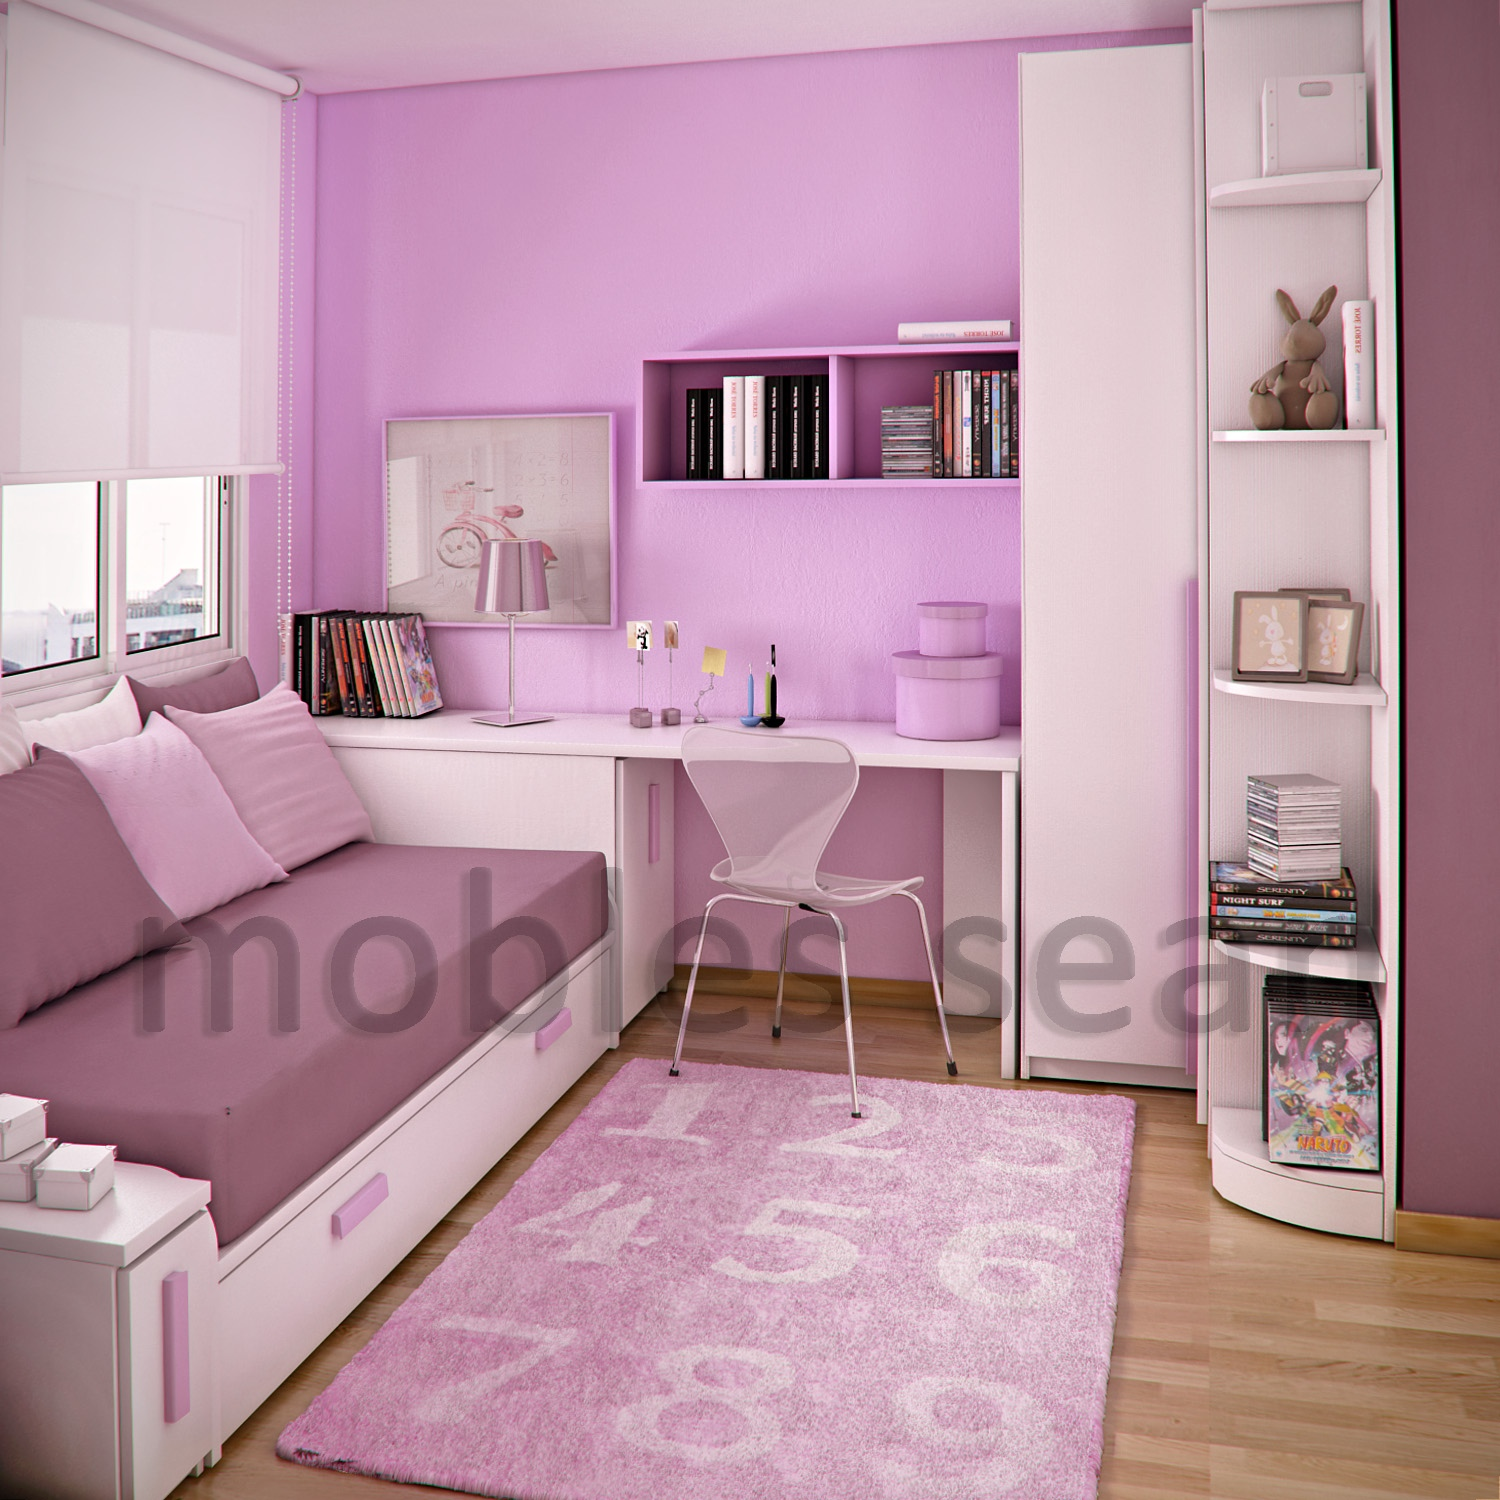 space saving designs for small kids rooms - Bedroom Ideas For Small Rooms